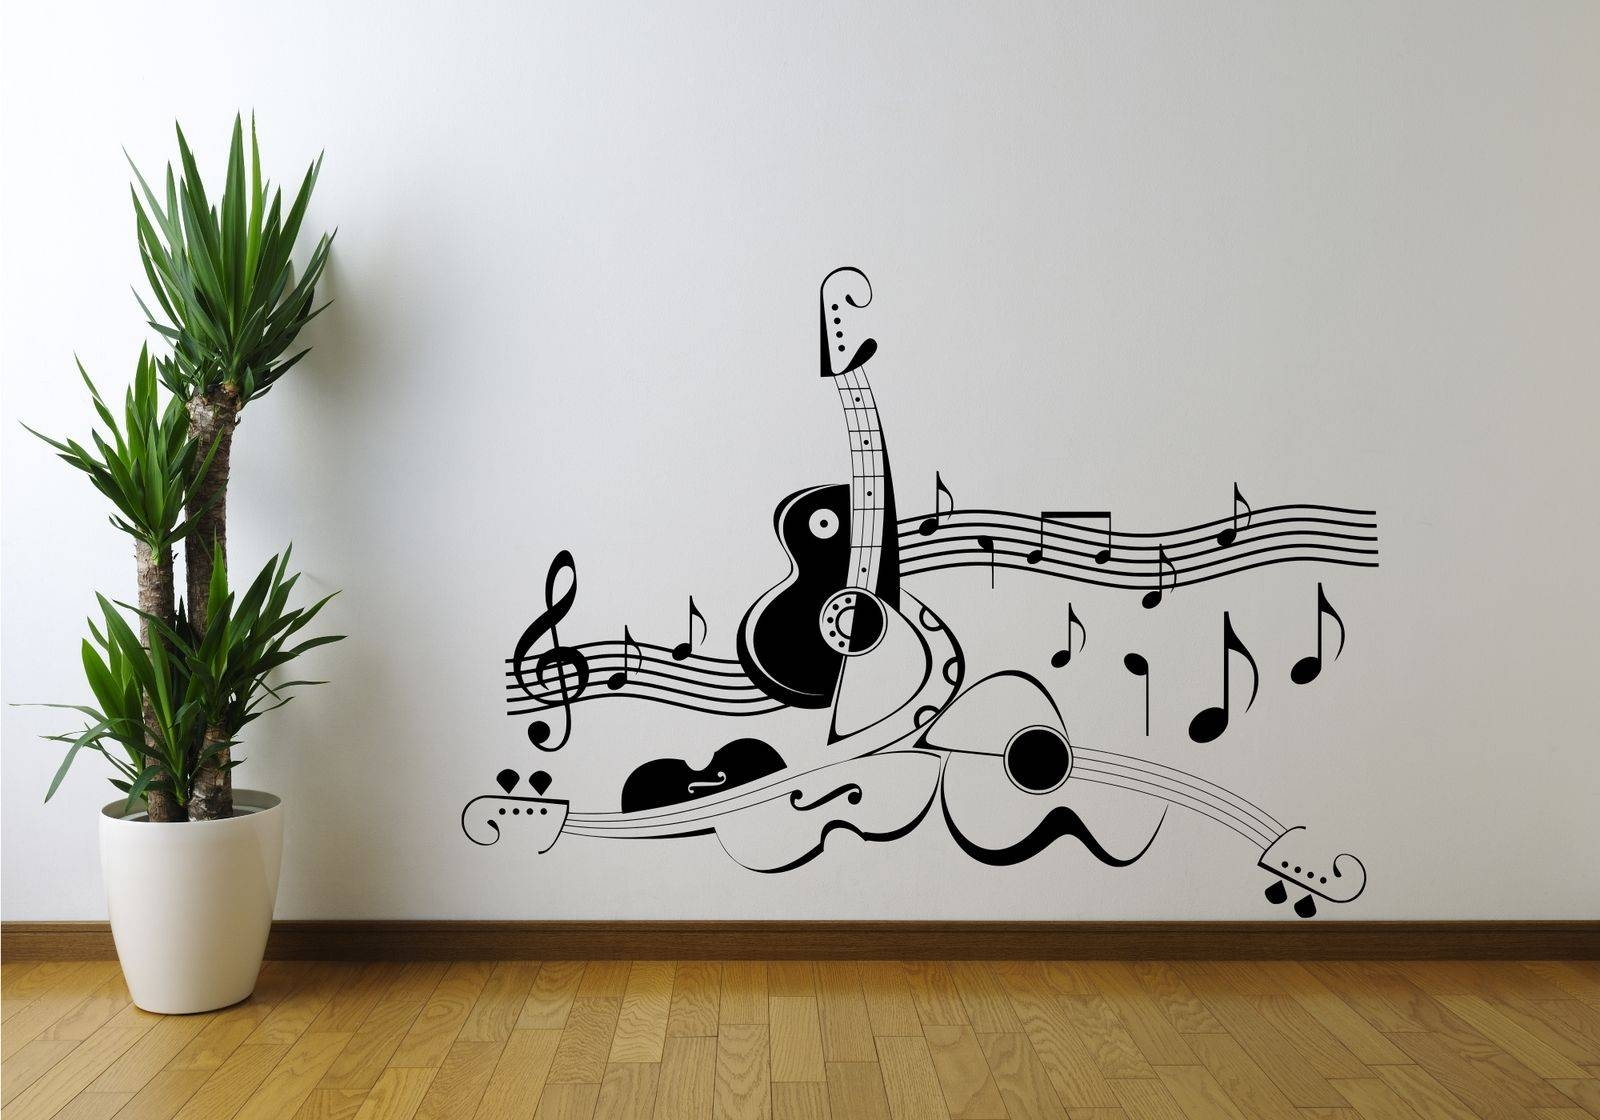 Guitar Music Note Symbol Violin Wall Art Sticker Decal Mural Vinyl Inside Newest Music Note Art For Walls (View 3 of 25)